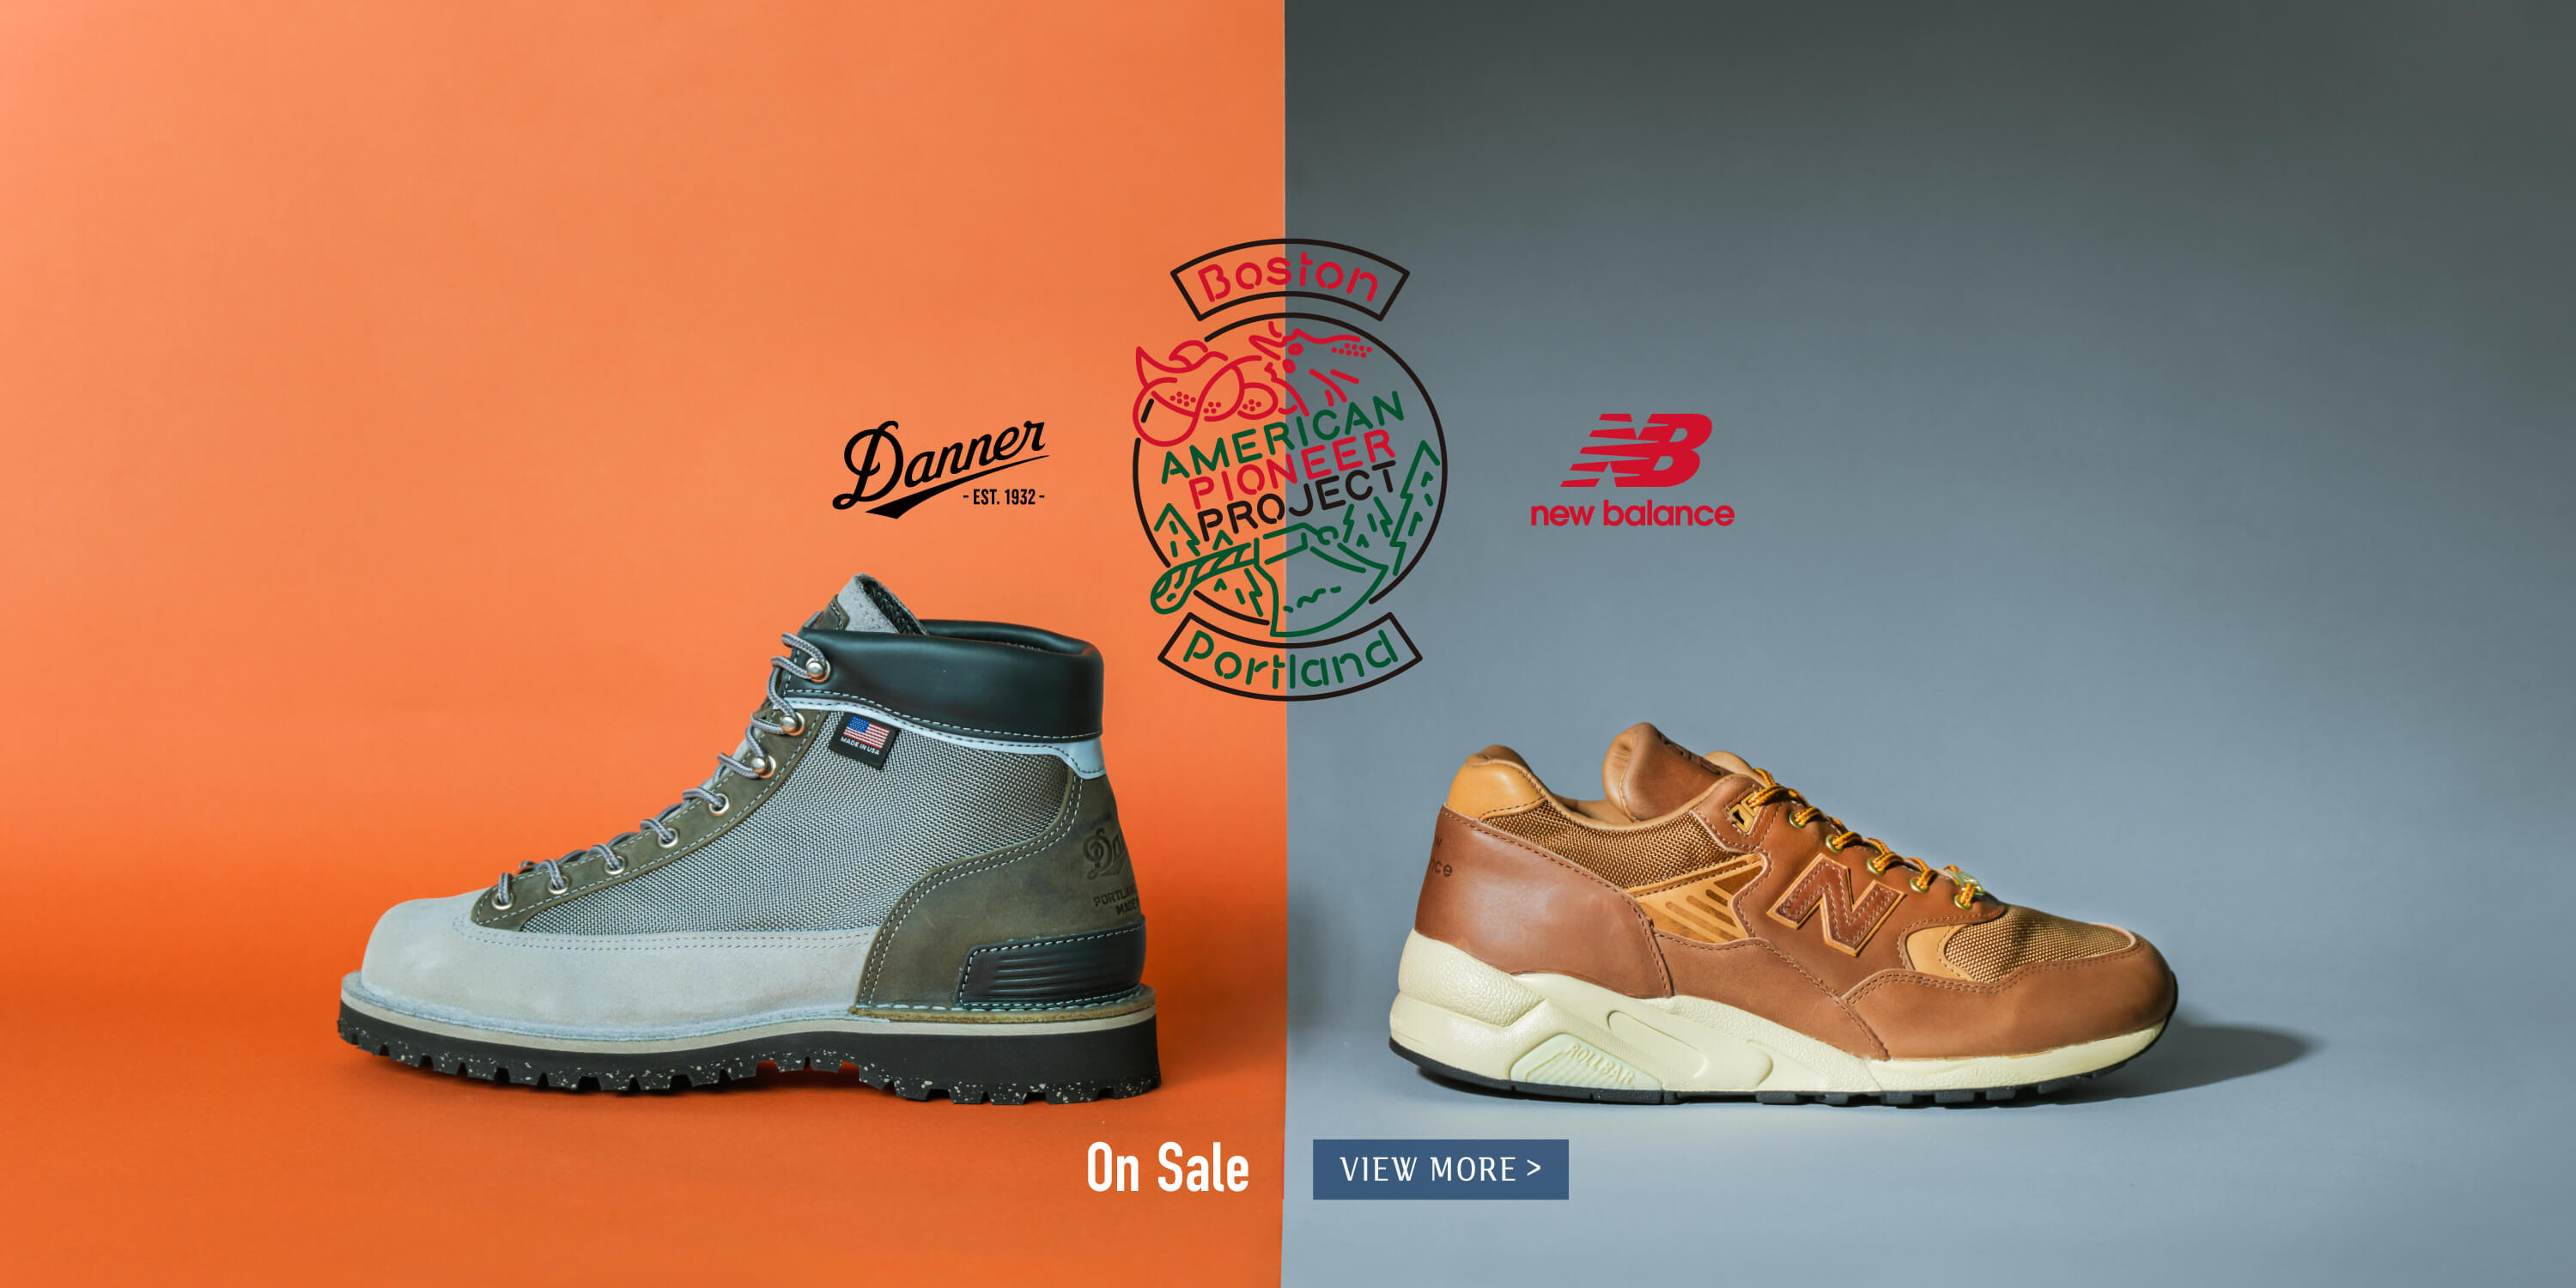 NEW BALANCE × DANNER AMERICAN PIONEER PROJECT